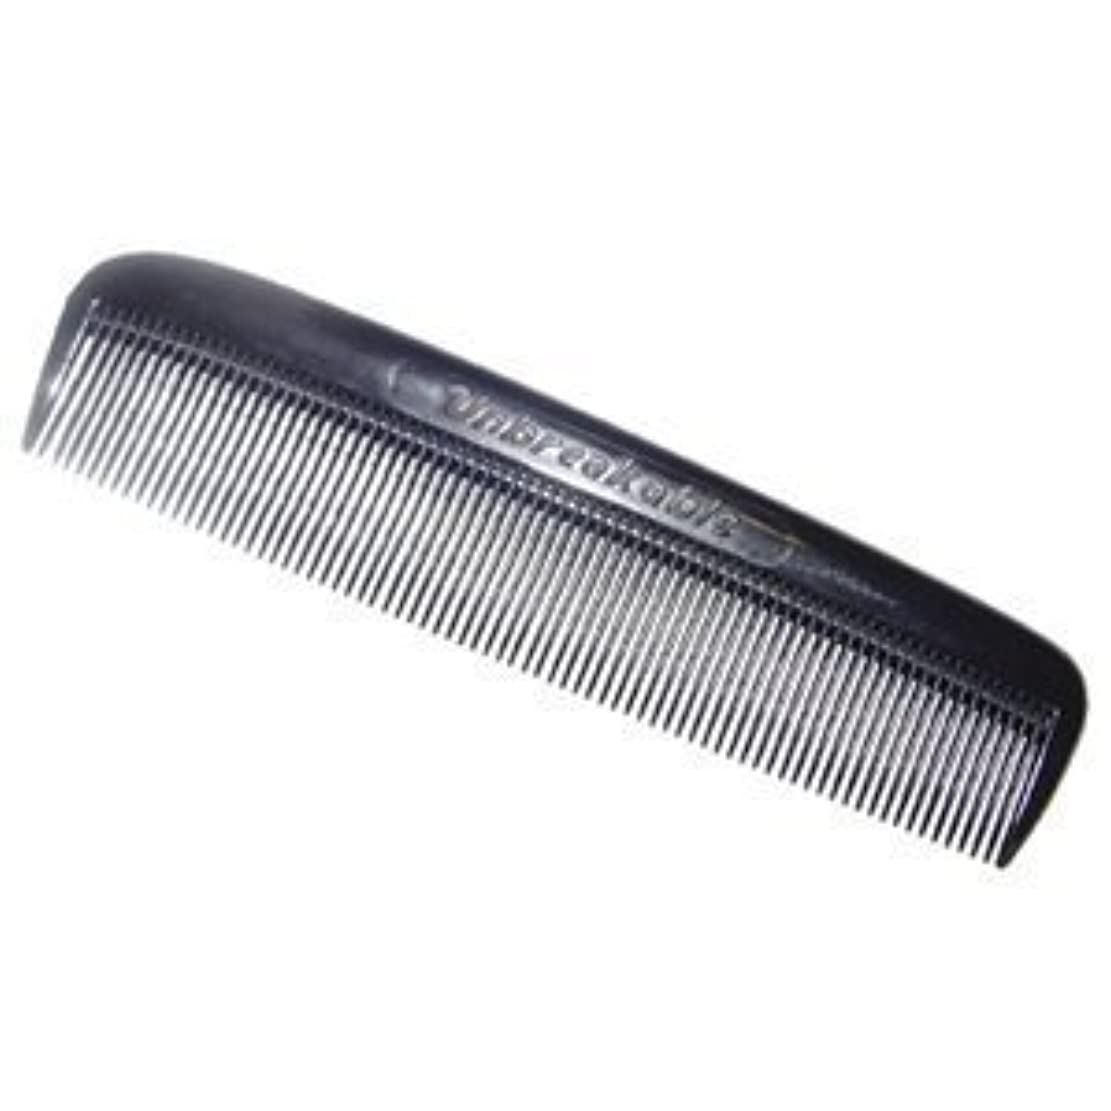 Set of 5 Clipper-mate Pocket Combs 5